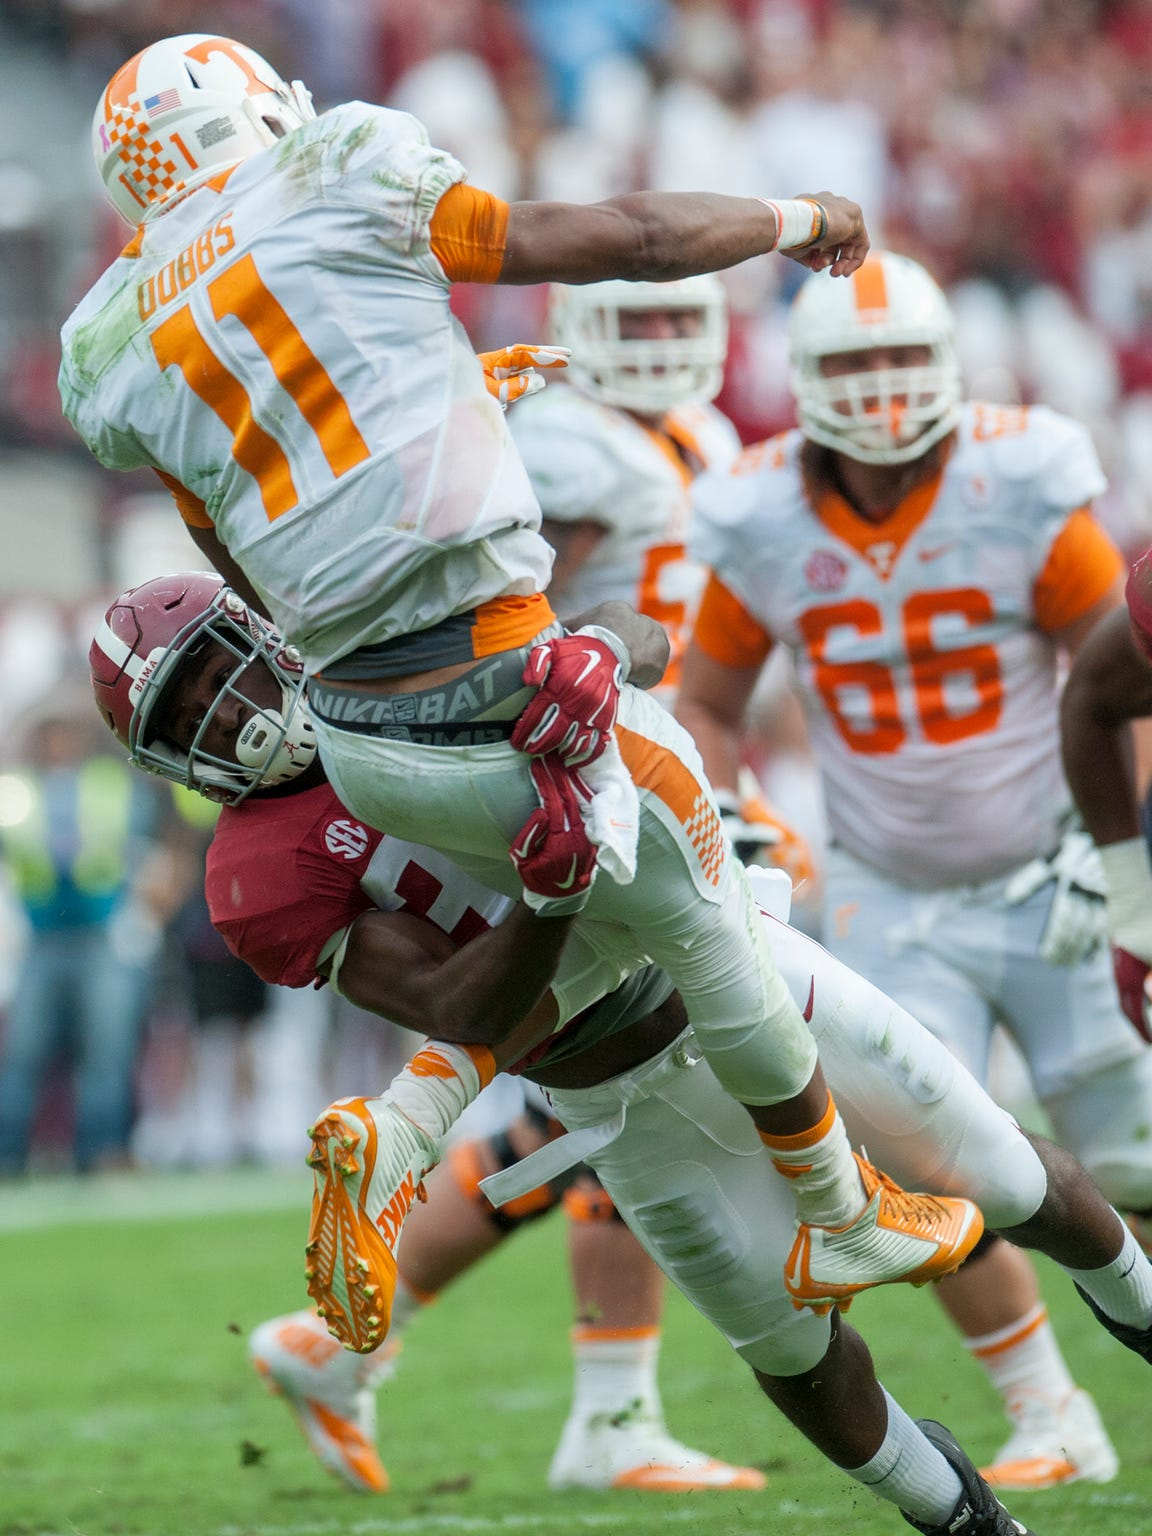 Alabama linebacker Rashaan Evans (32) tackles Tennessee quarterback Joshua Dobbs (11) as he releases the ball at Bryant-Denny Stadium in Tuscaloosa, Ala. on Saturday October 24, 2015. (Mickey Welsh / Montgomery Advertiser)